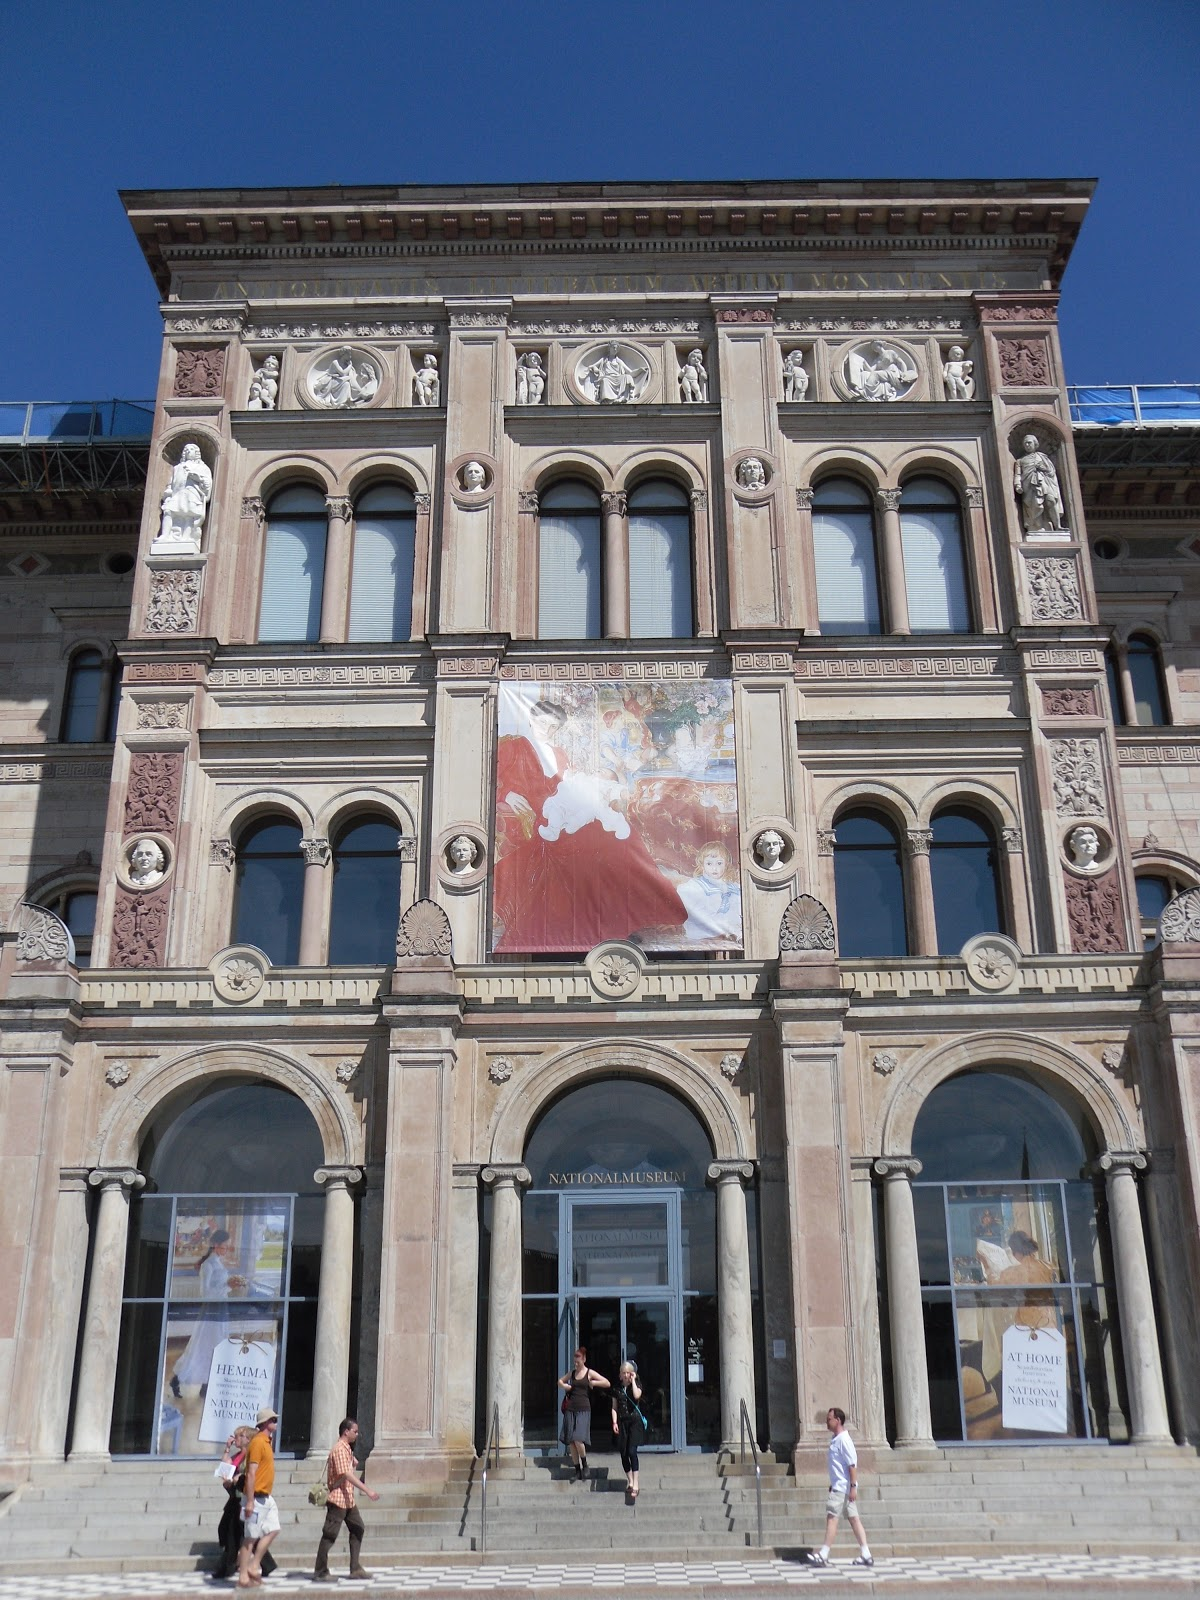 The Stockholm Tourist: Museums in Stockholm